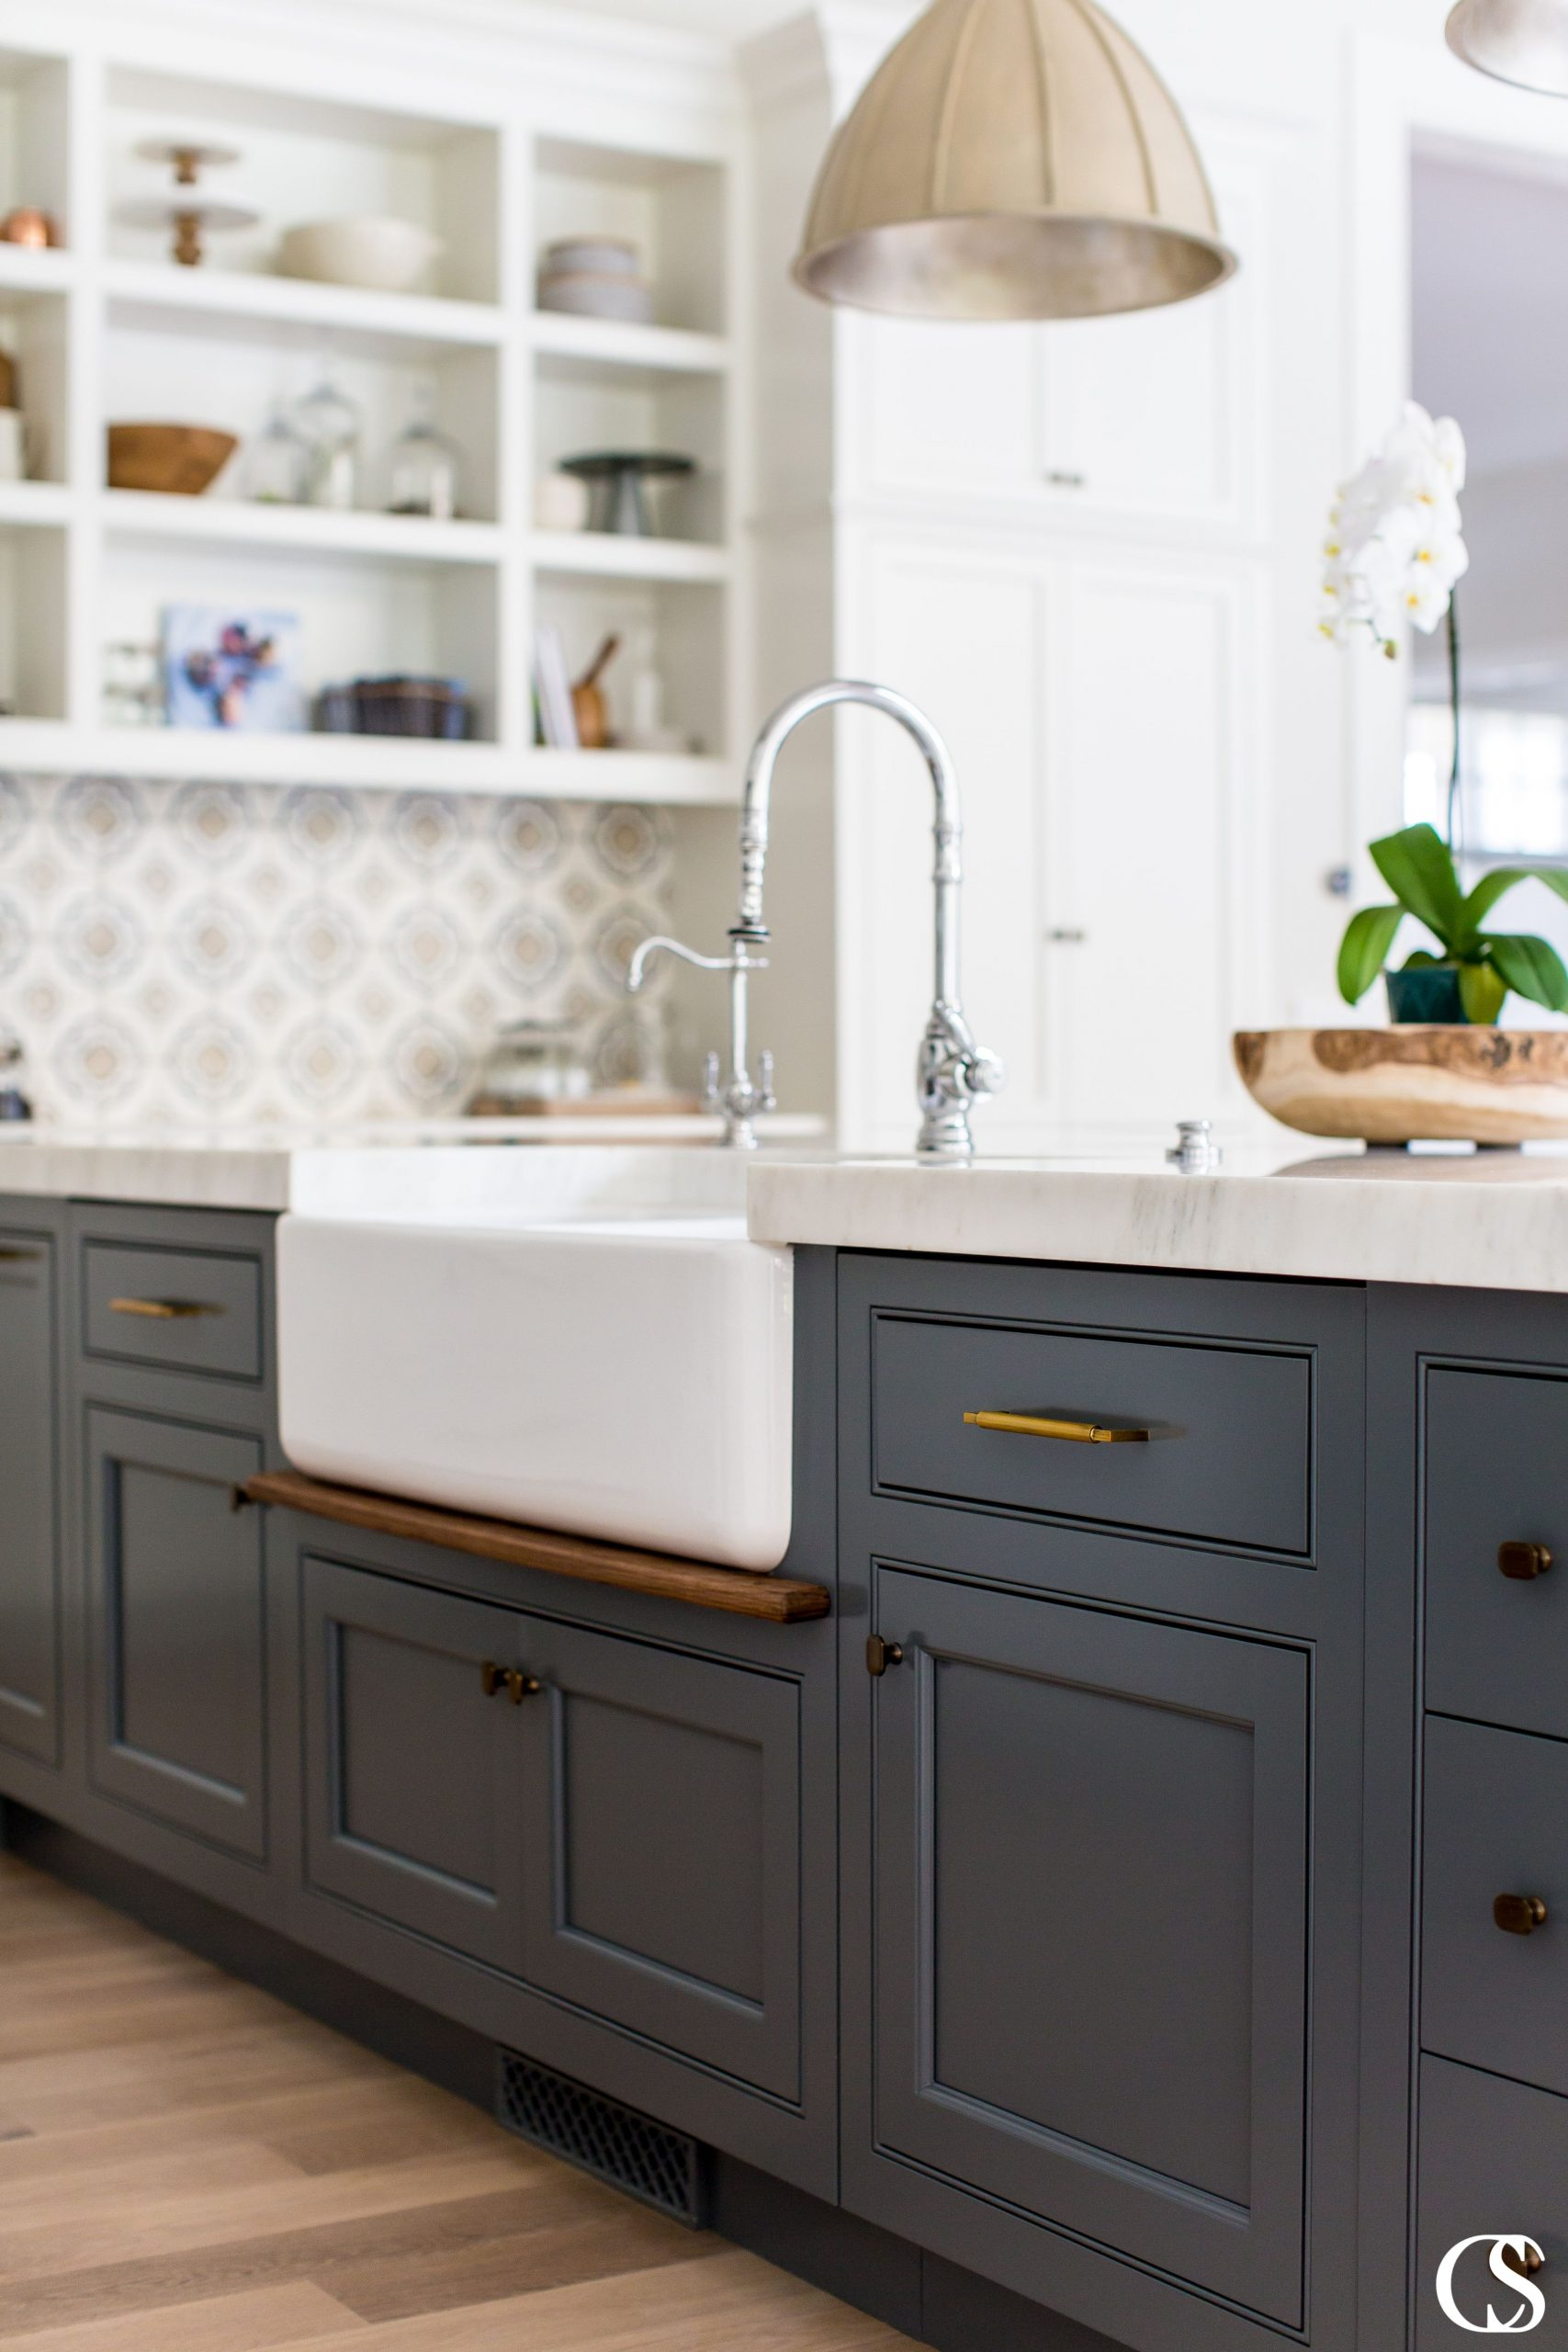 Blue custom cabinets in the kitchen don't have to be bright or overwhelming. I love the subtle, almost smokey blue of this kitchen island and how it grounds a mostly white kitchen.